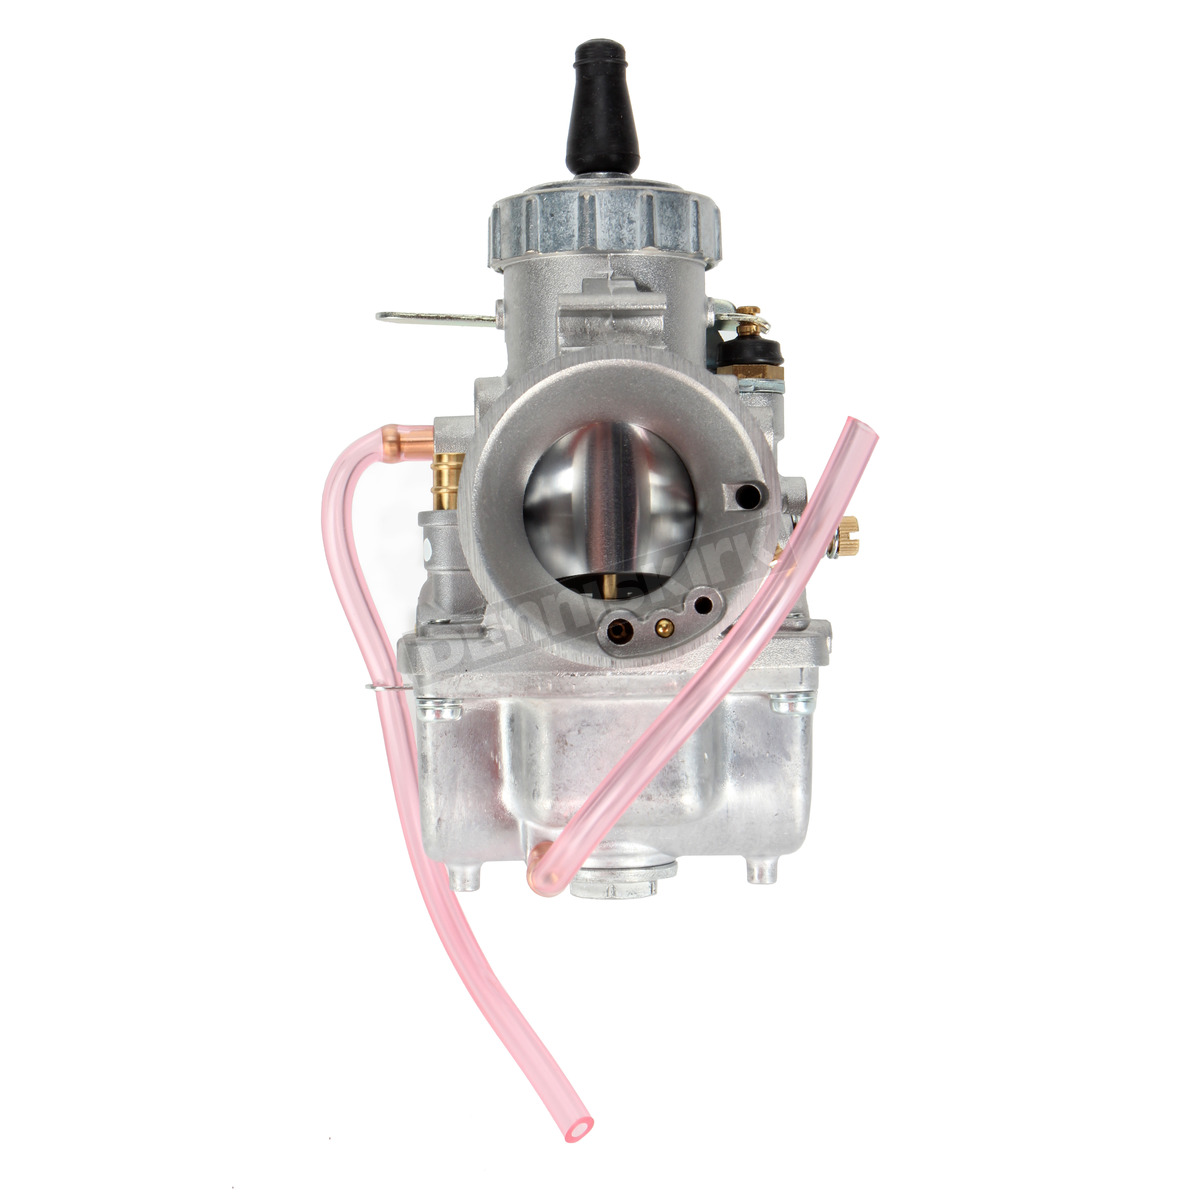 34mm VM Series Universal Round Slide Carburetor - VM34-275